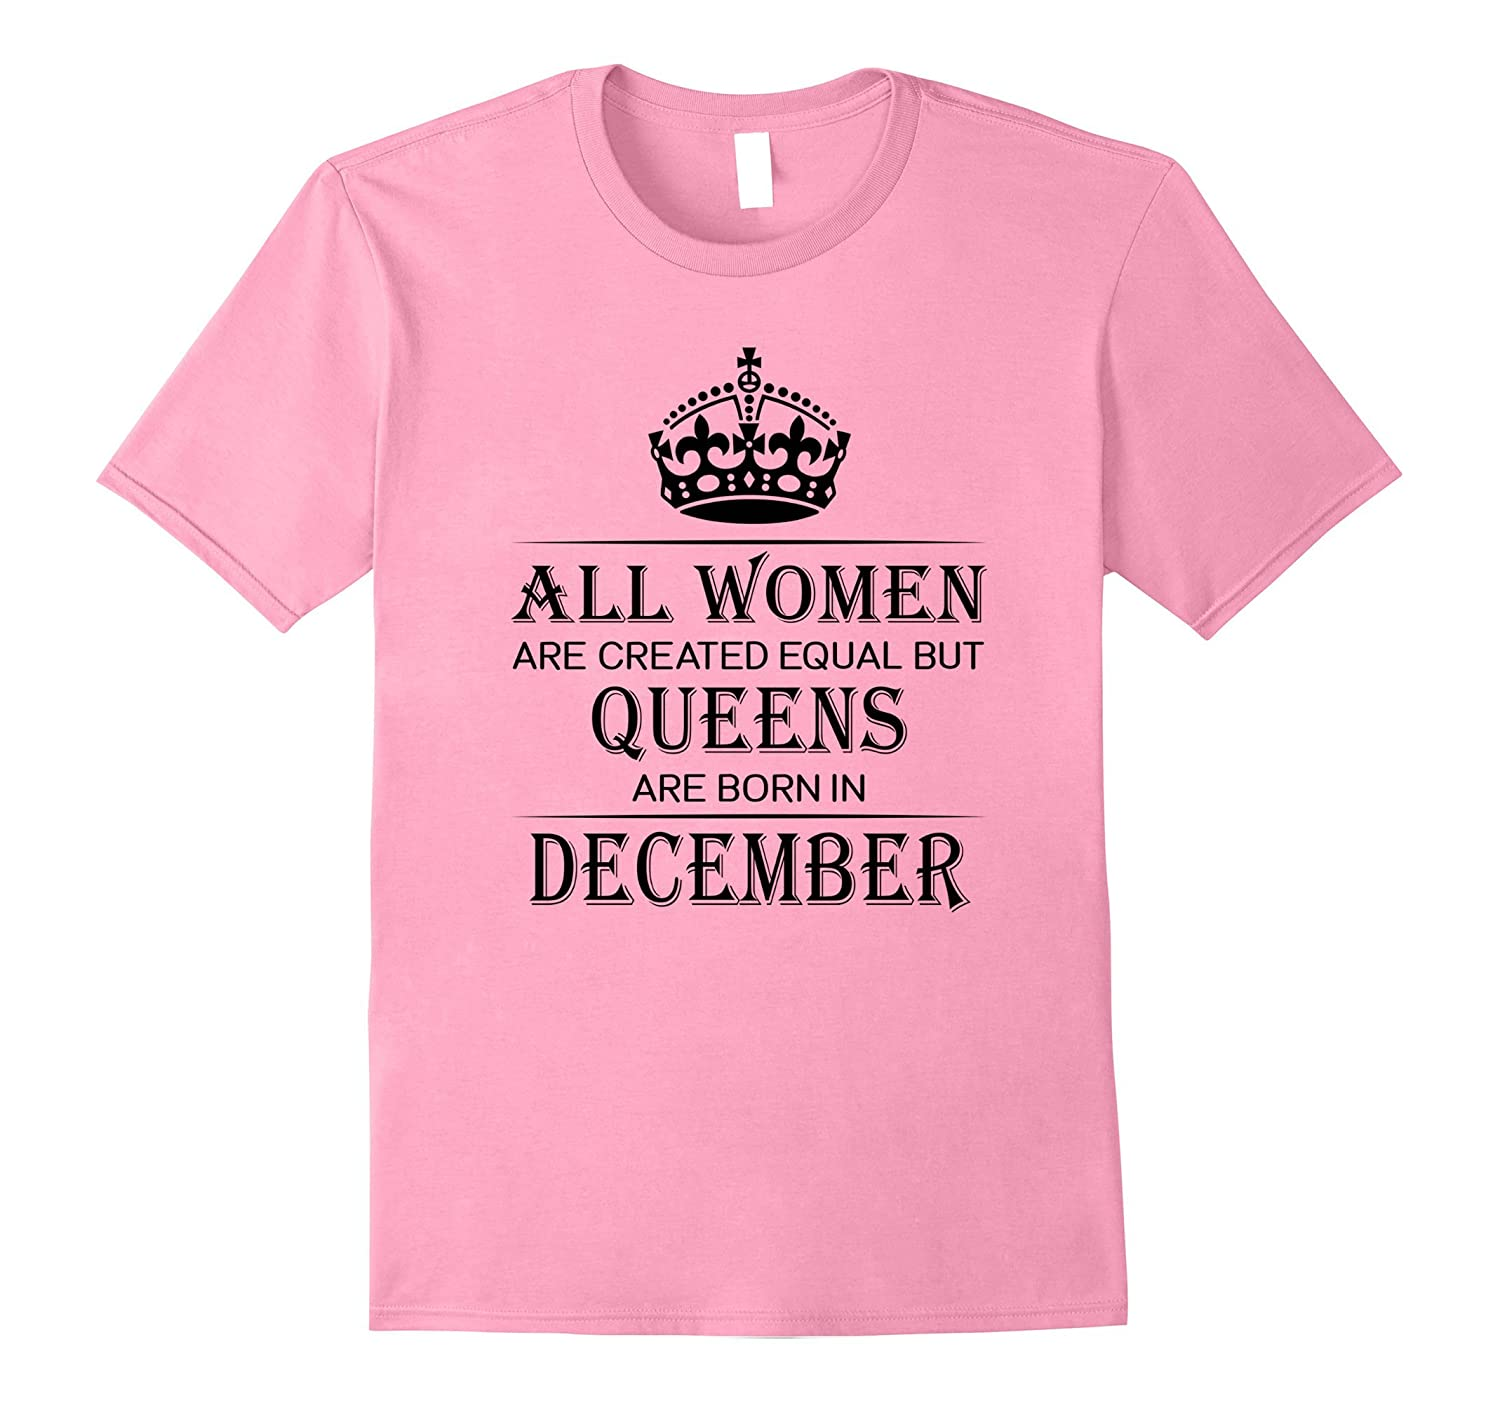 All Women Are Created Equal But Queens Are Born In December-FL